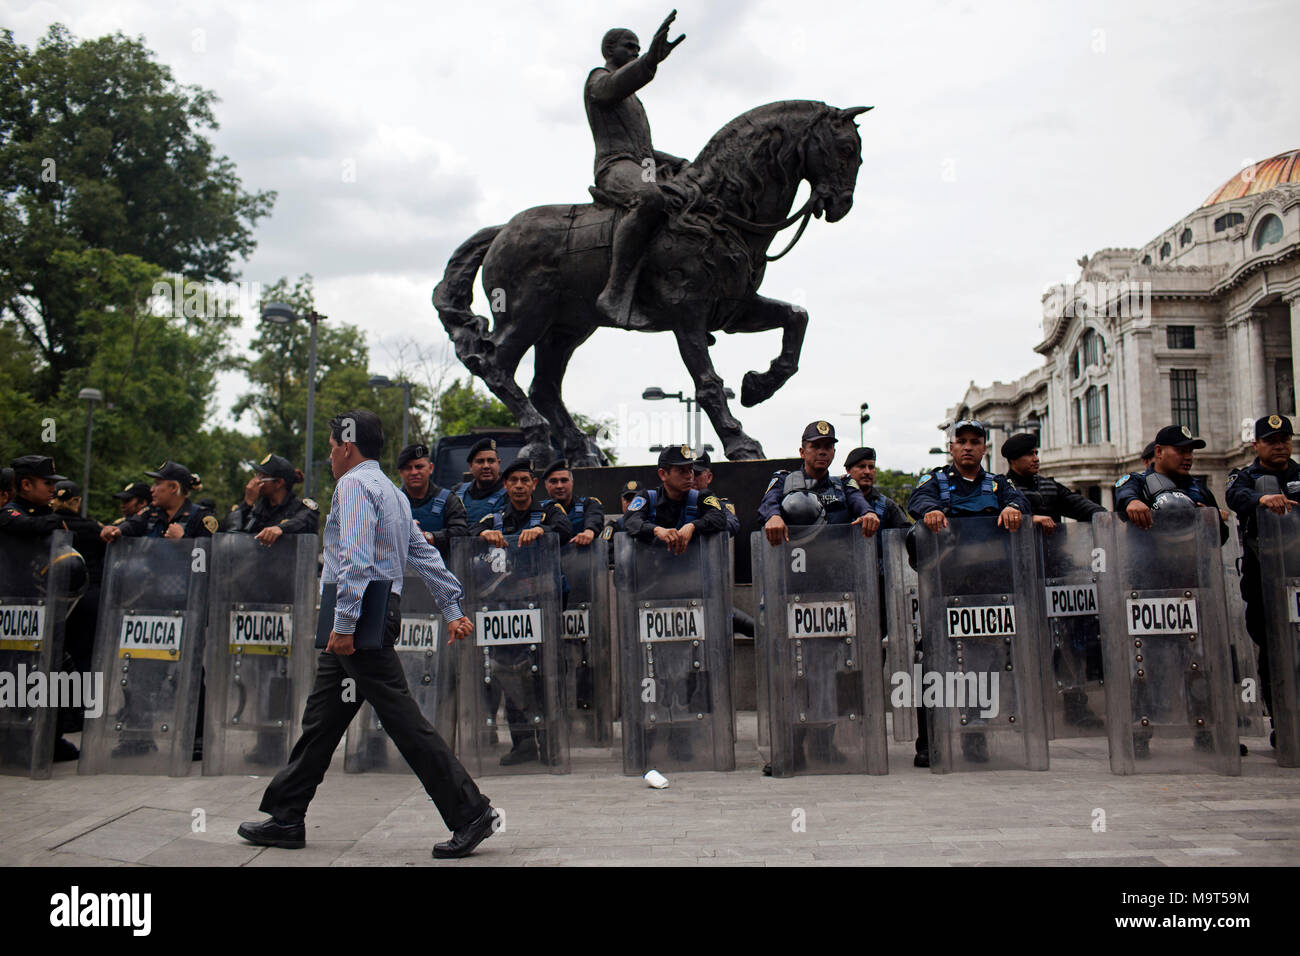 A man walks by a line of Mexican Police prior to a protest in Mexico City, Mexico on Monday, June 1, 2015. Numerous protests have occurred prior to Mexico's midterm elections. - Stock Image